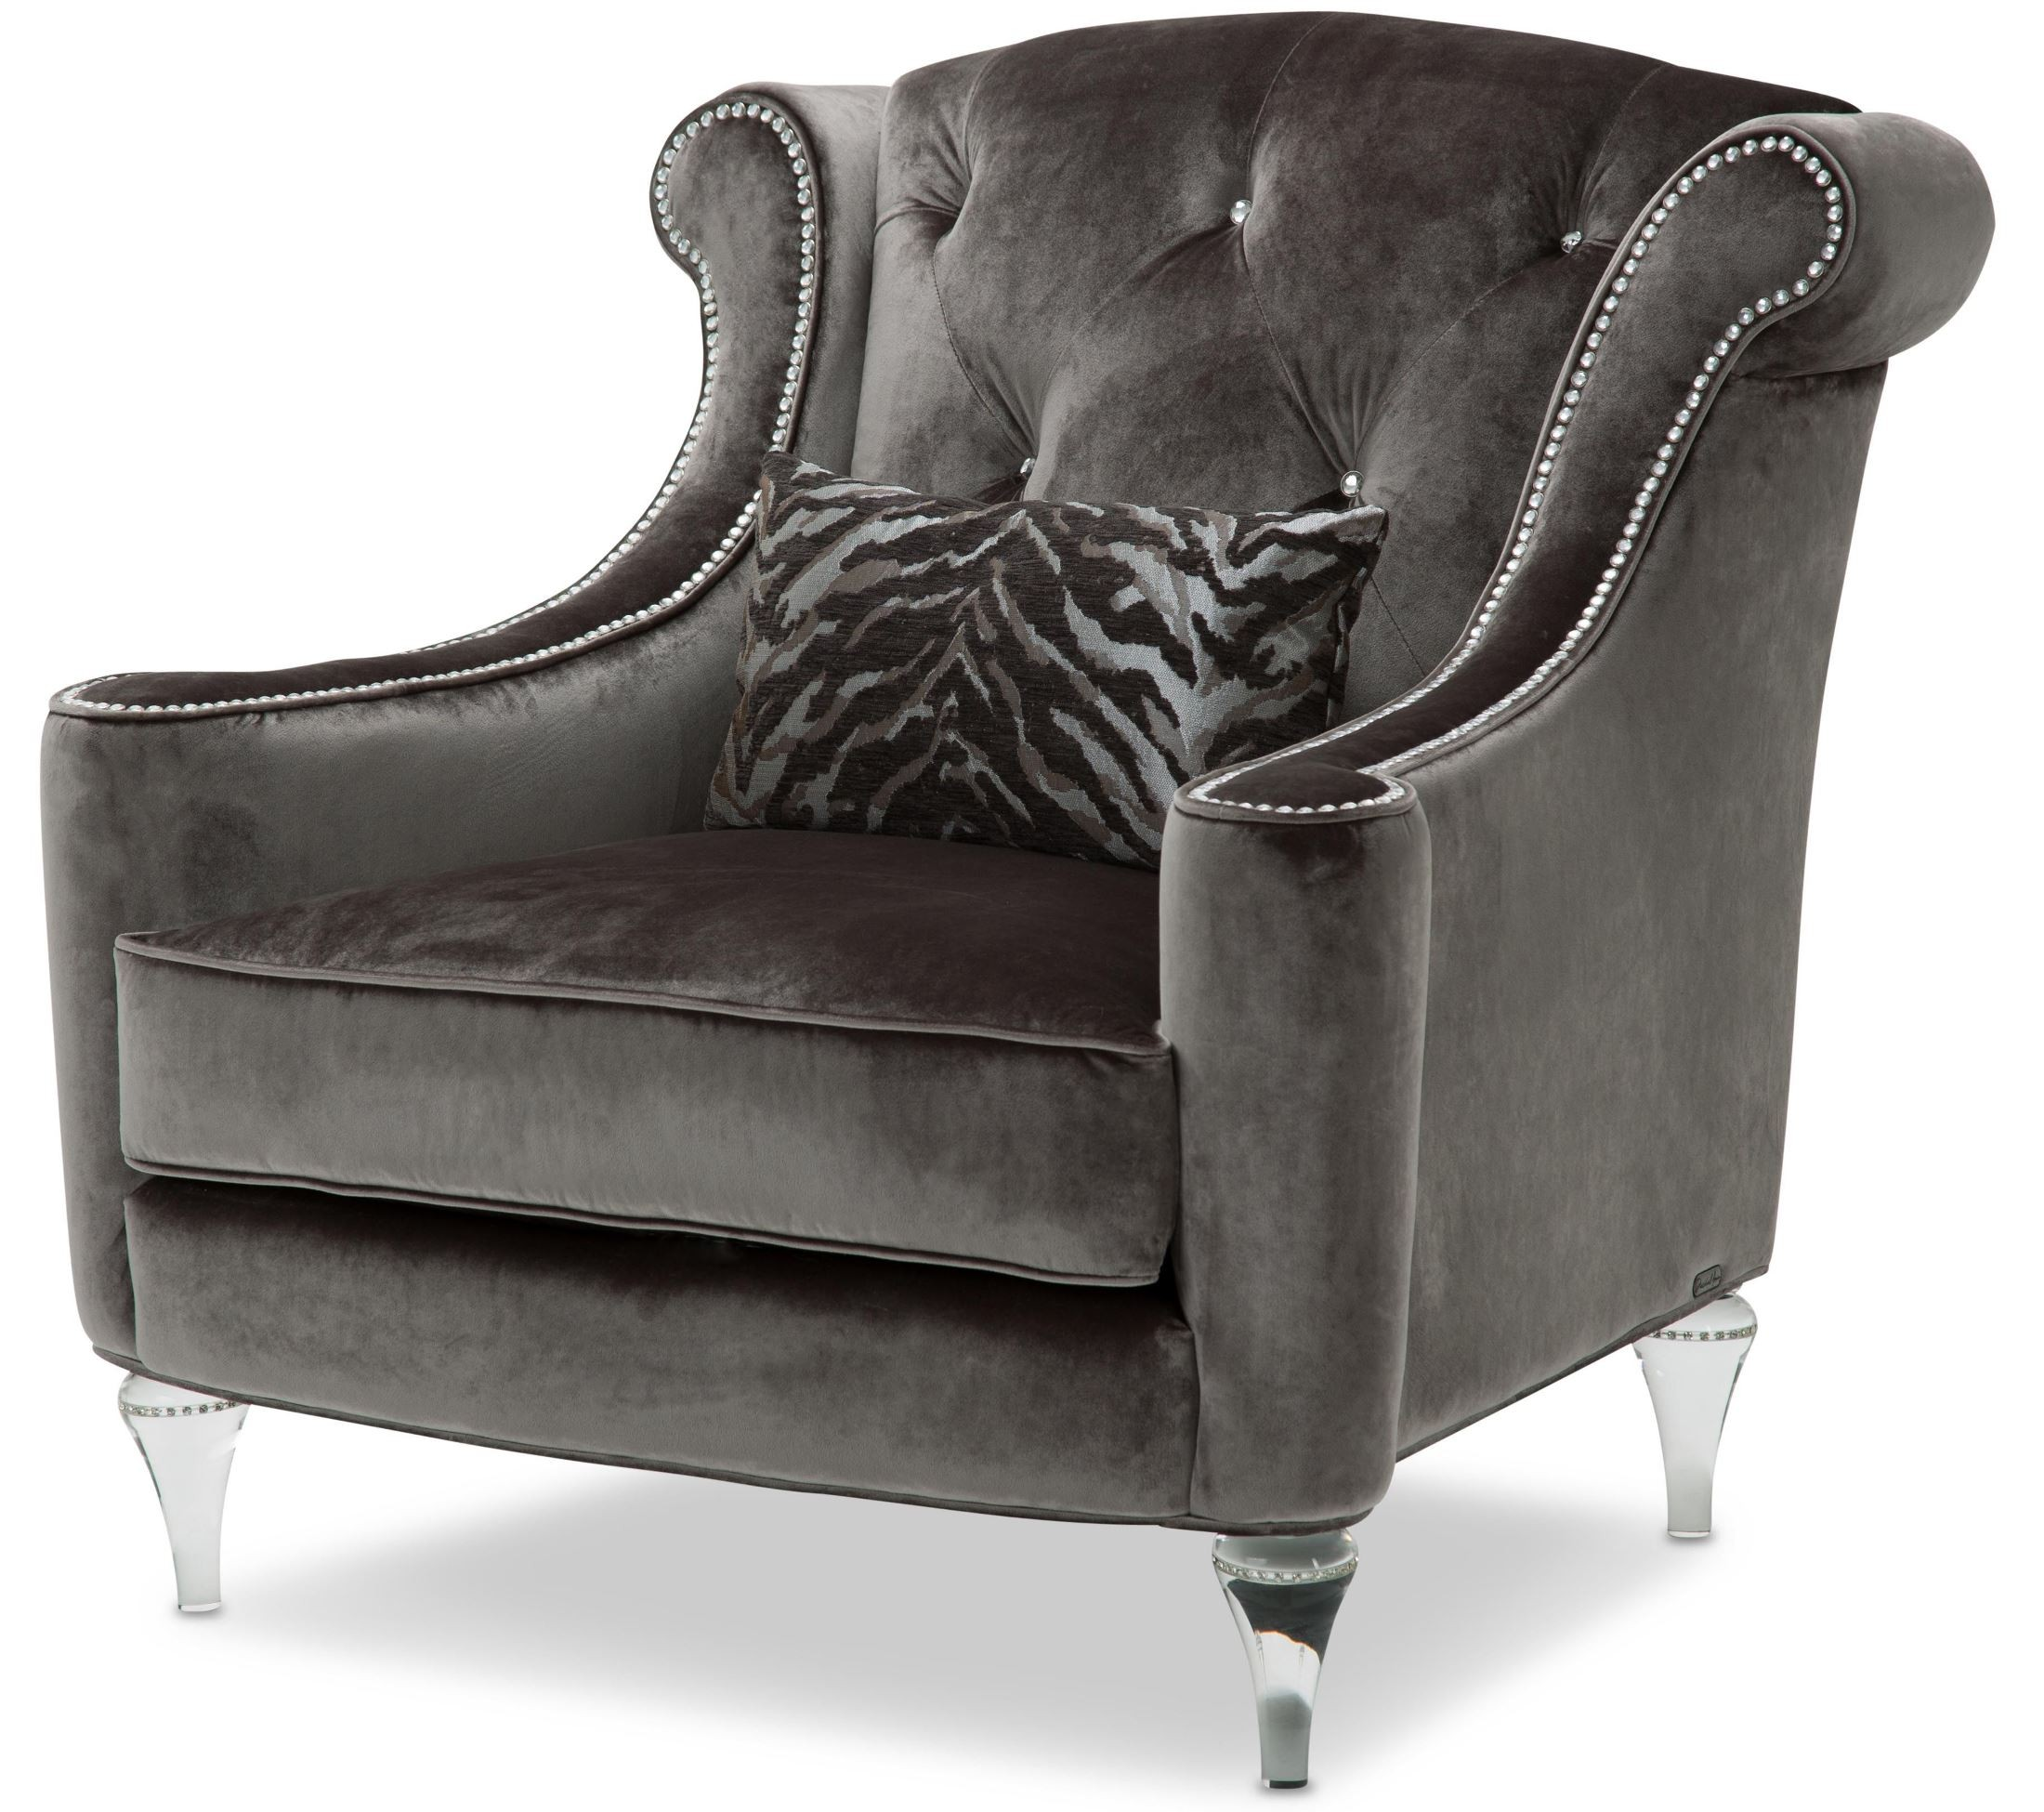 Studio Chairs Studio Adele Gray Tufted Chair St Adele35 Dsk 002 Aico